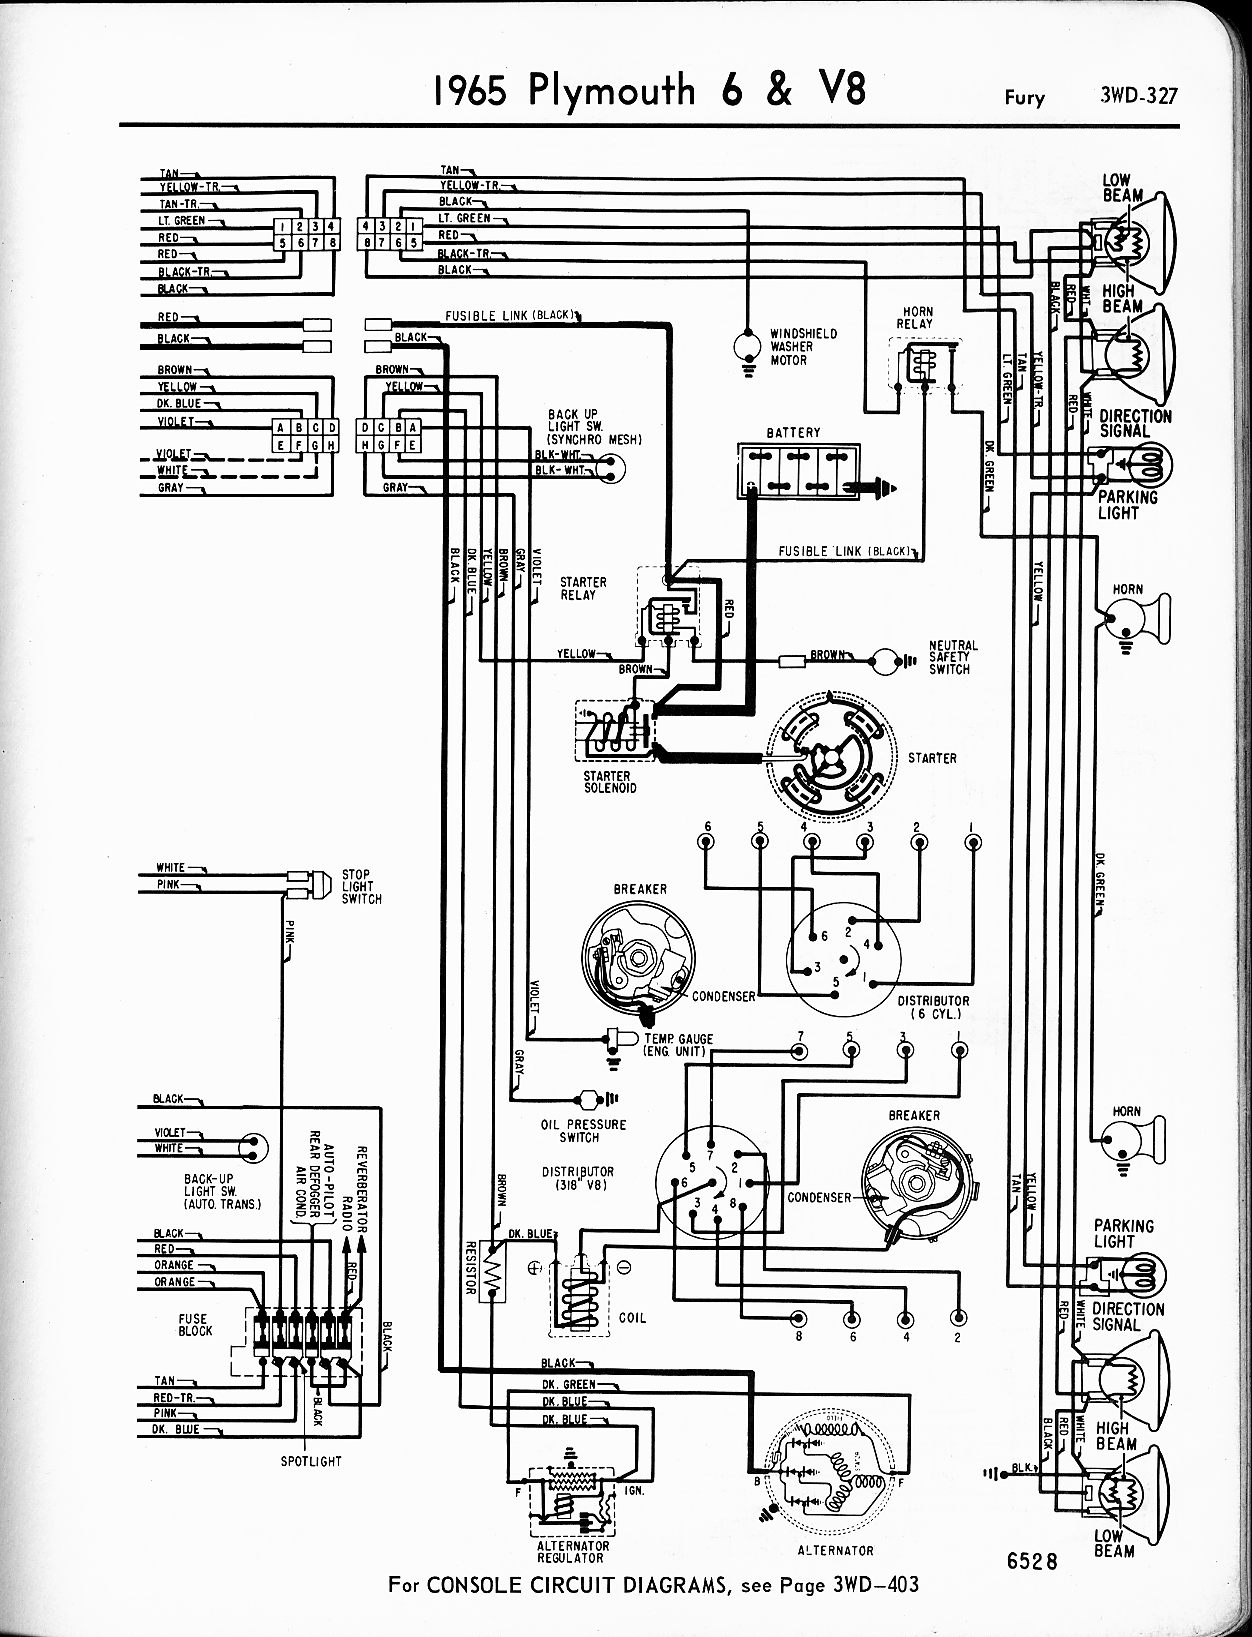 1951 Pontiac Wiring Diagram Schema Diagrams Wire Flat Trailer Harness Schematic Chevelle Chieftain